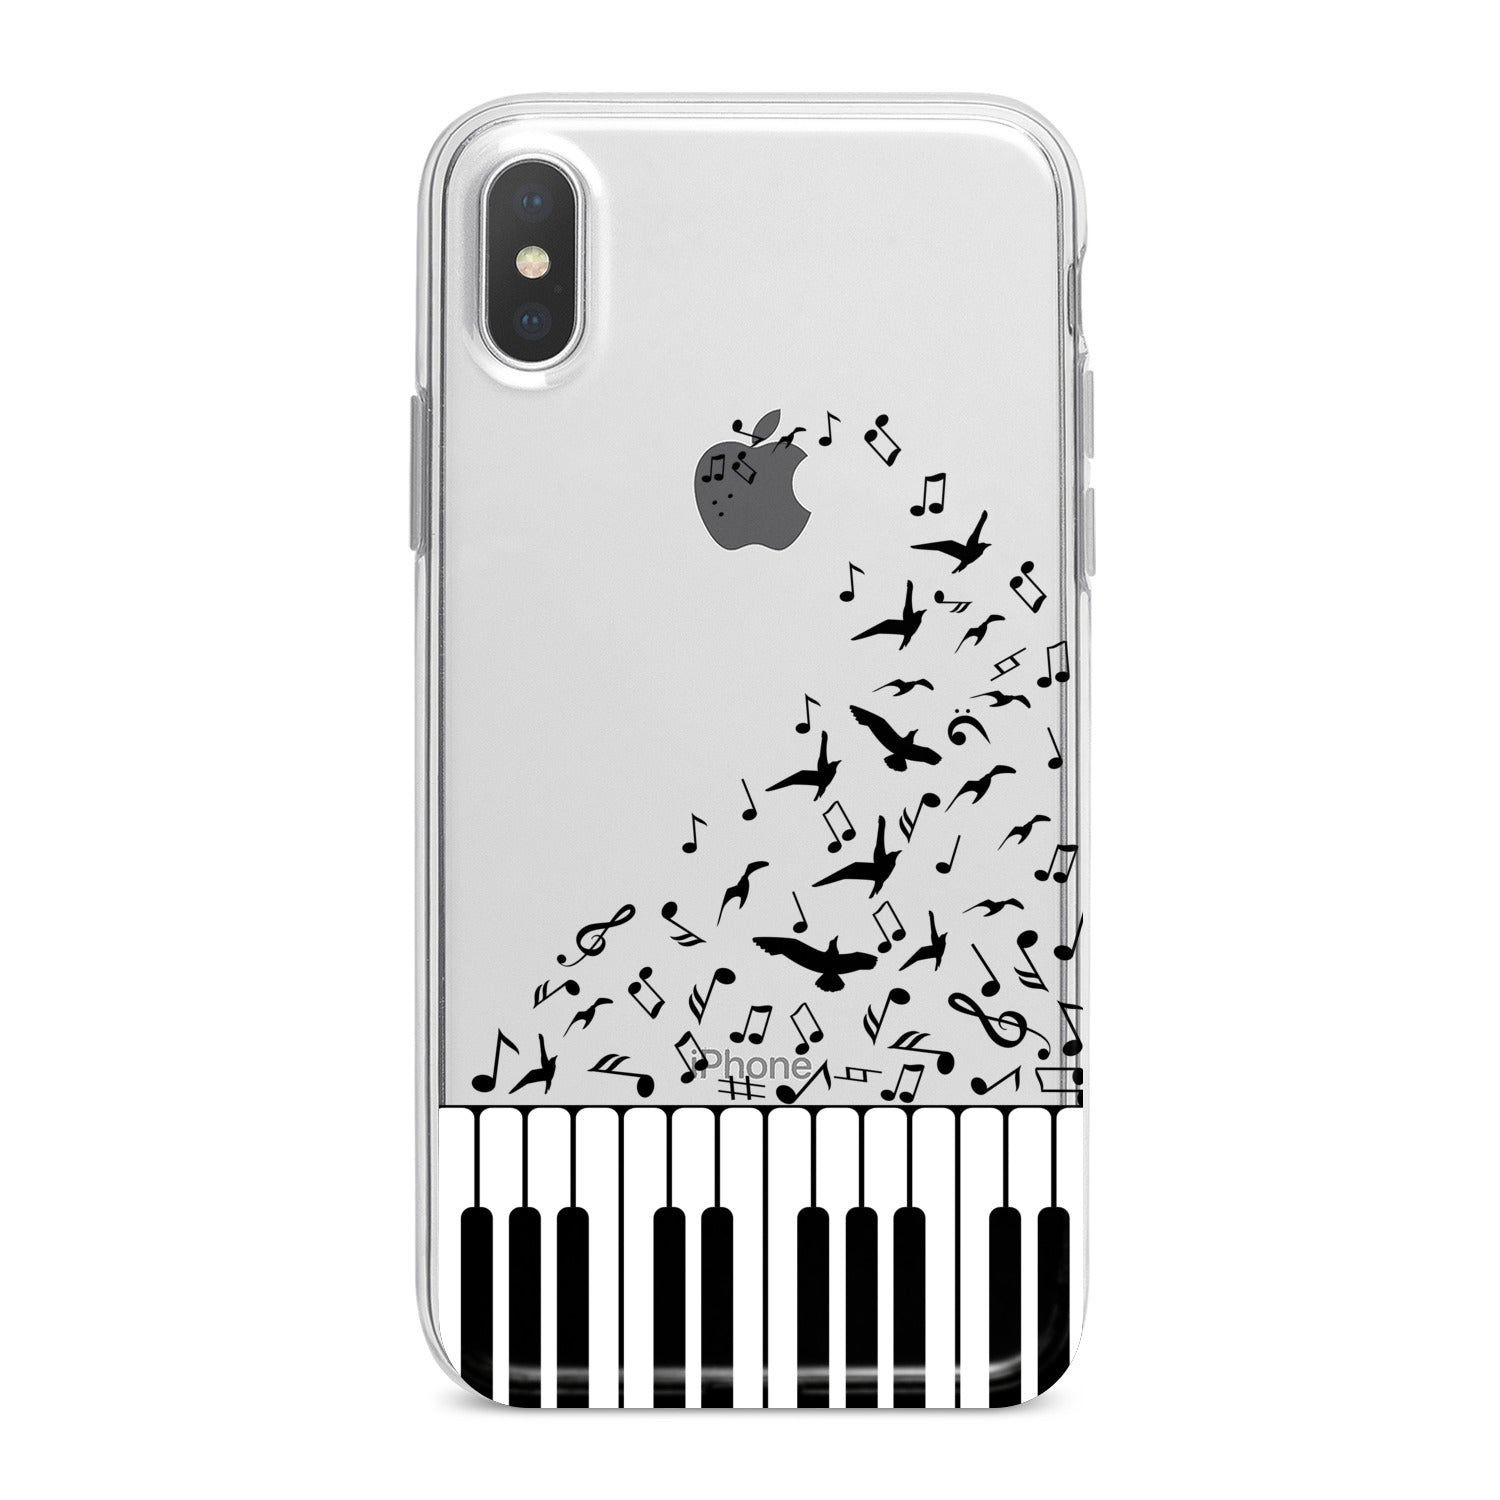 Lex Altern Piano Keys Phone Case for your iPhone & Android phone.